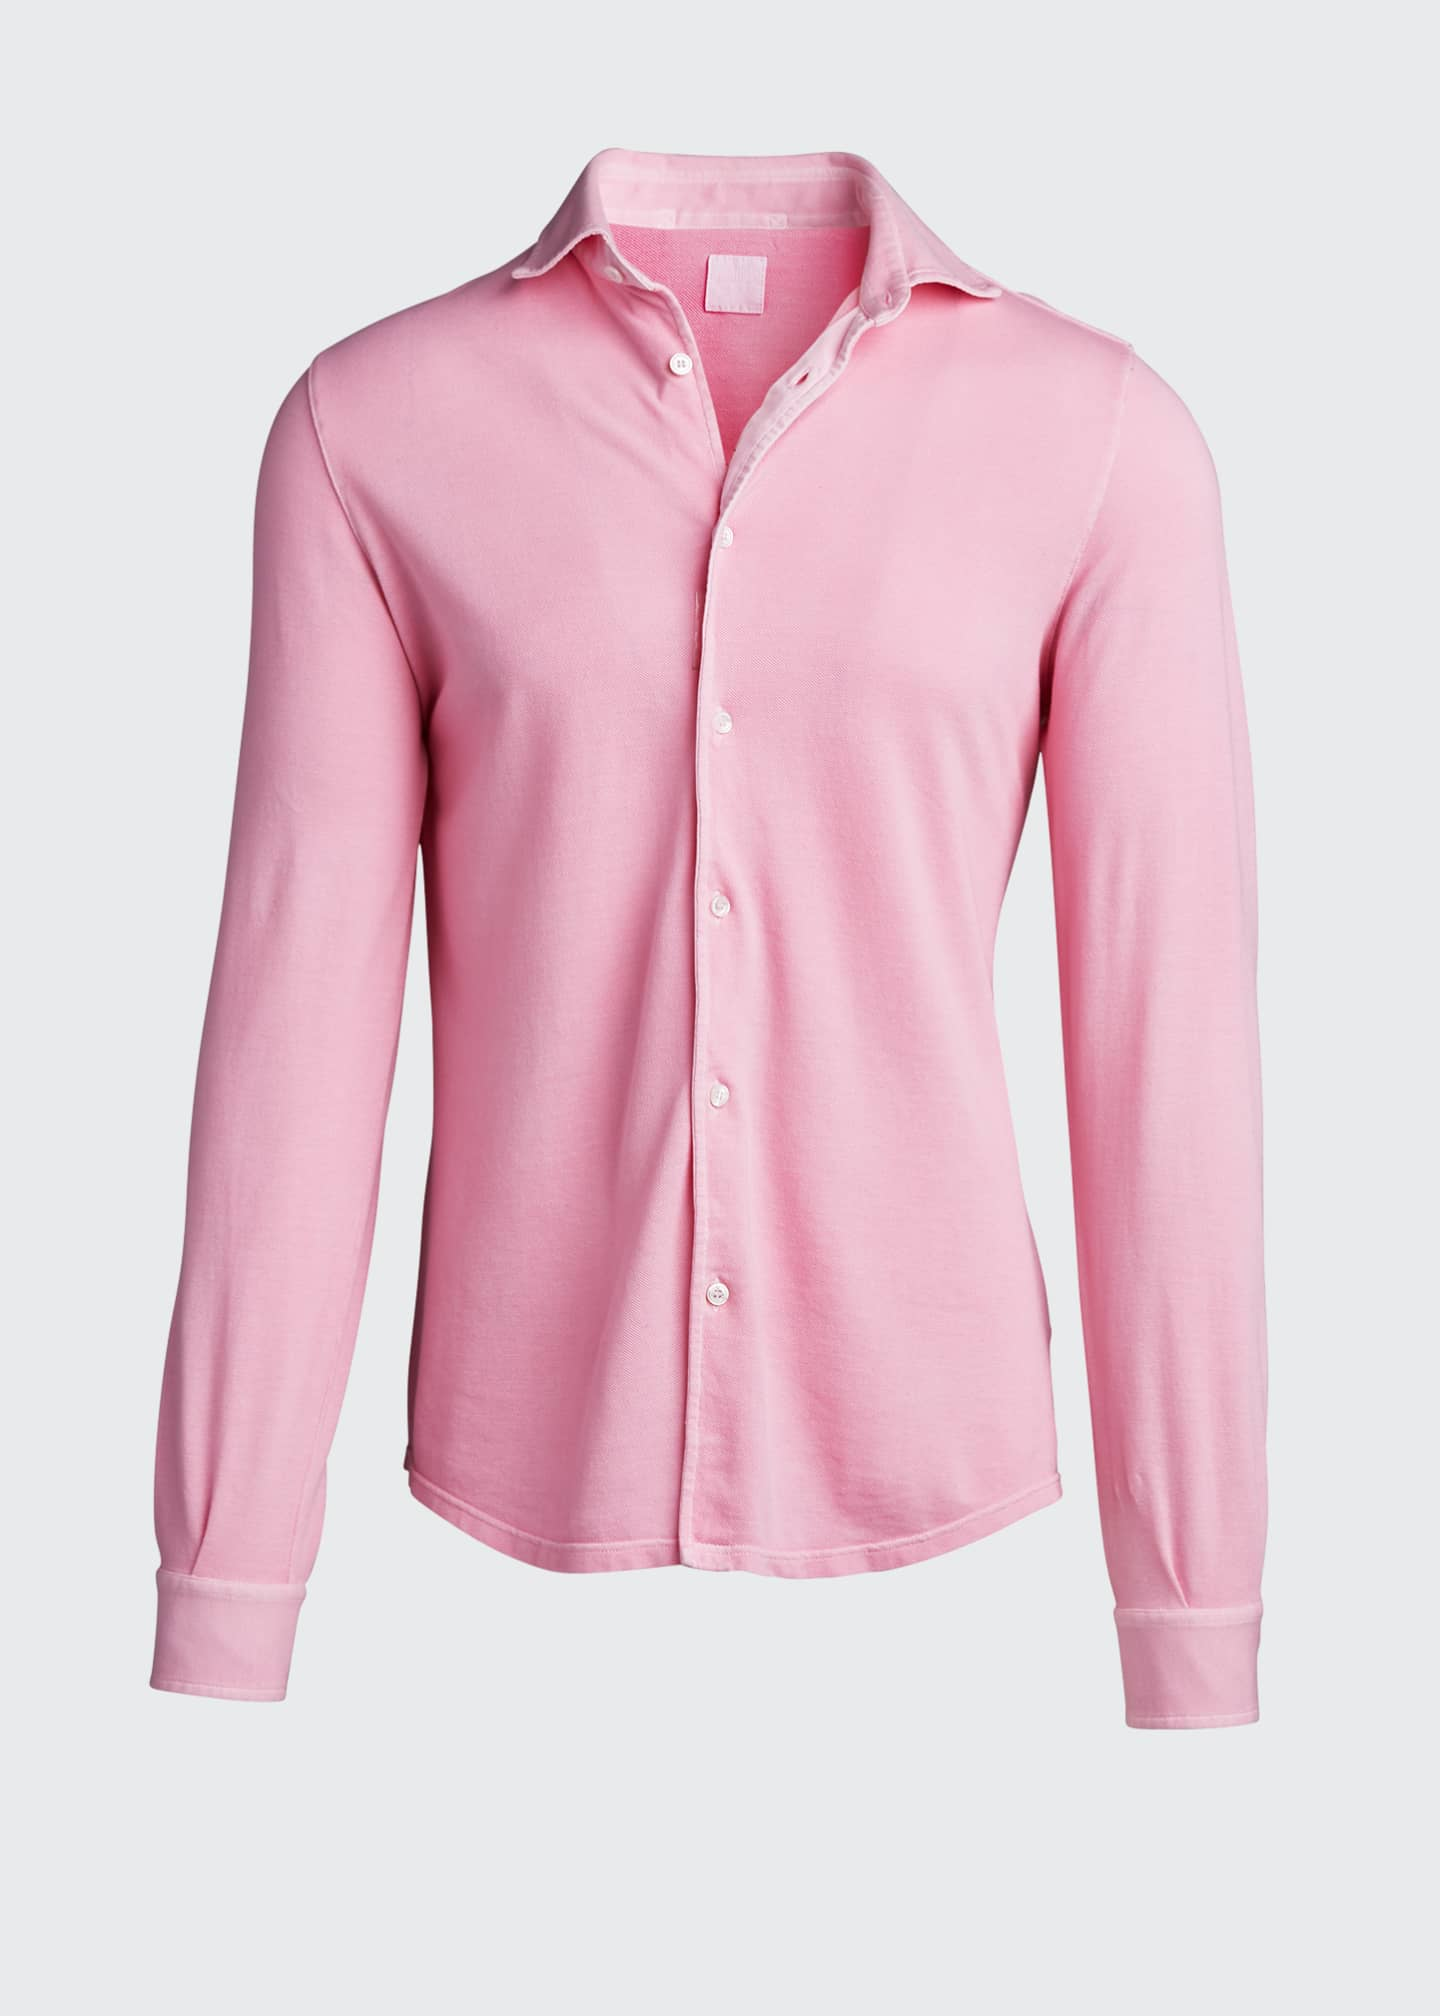 Image 5 of 5: Men's Steve Pique Sport Shirt